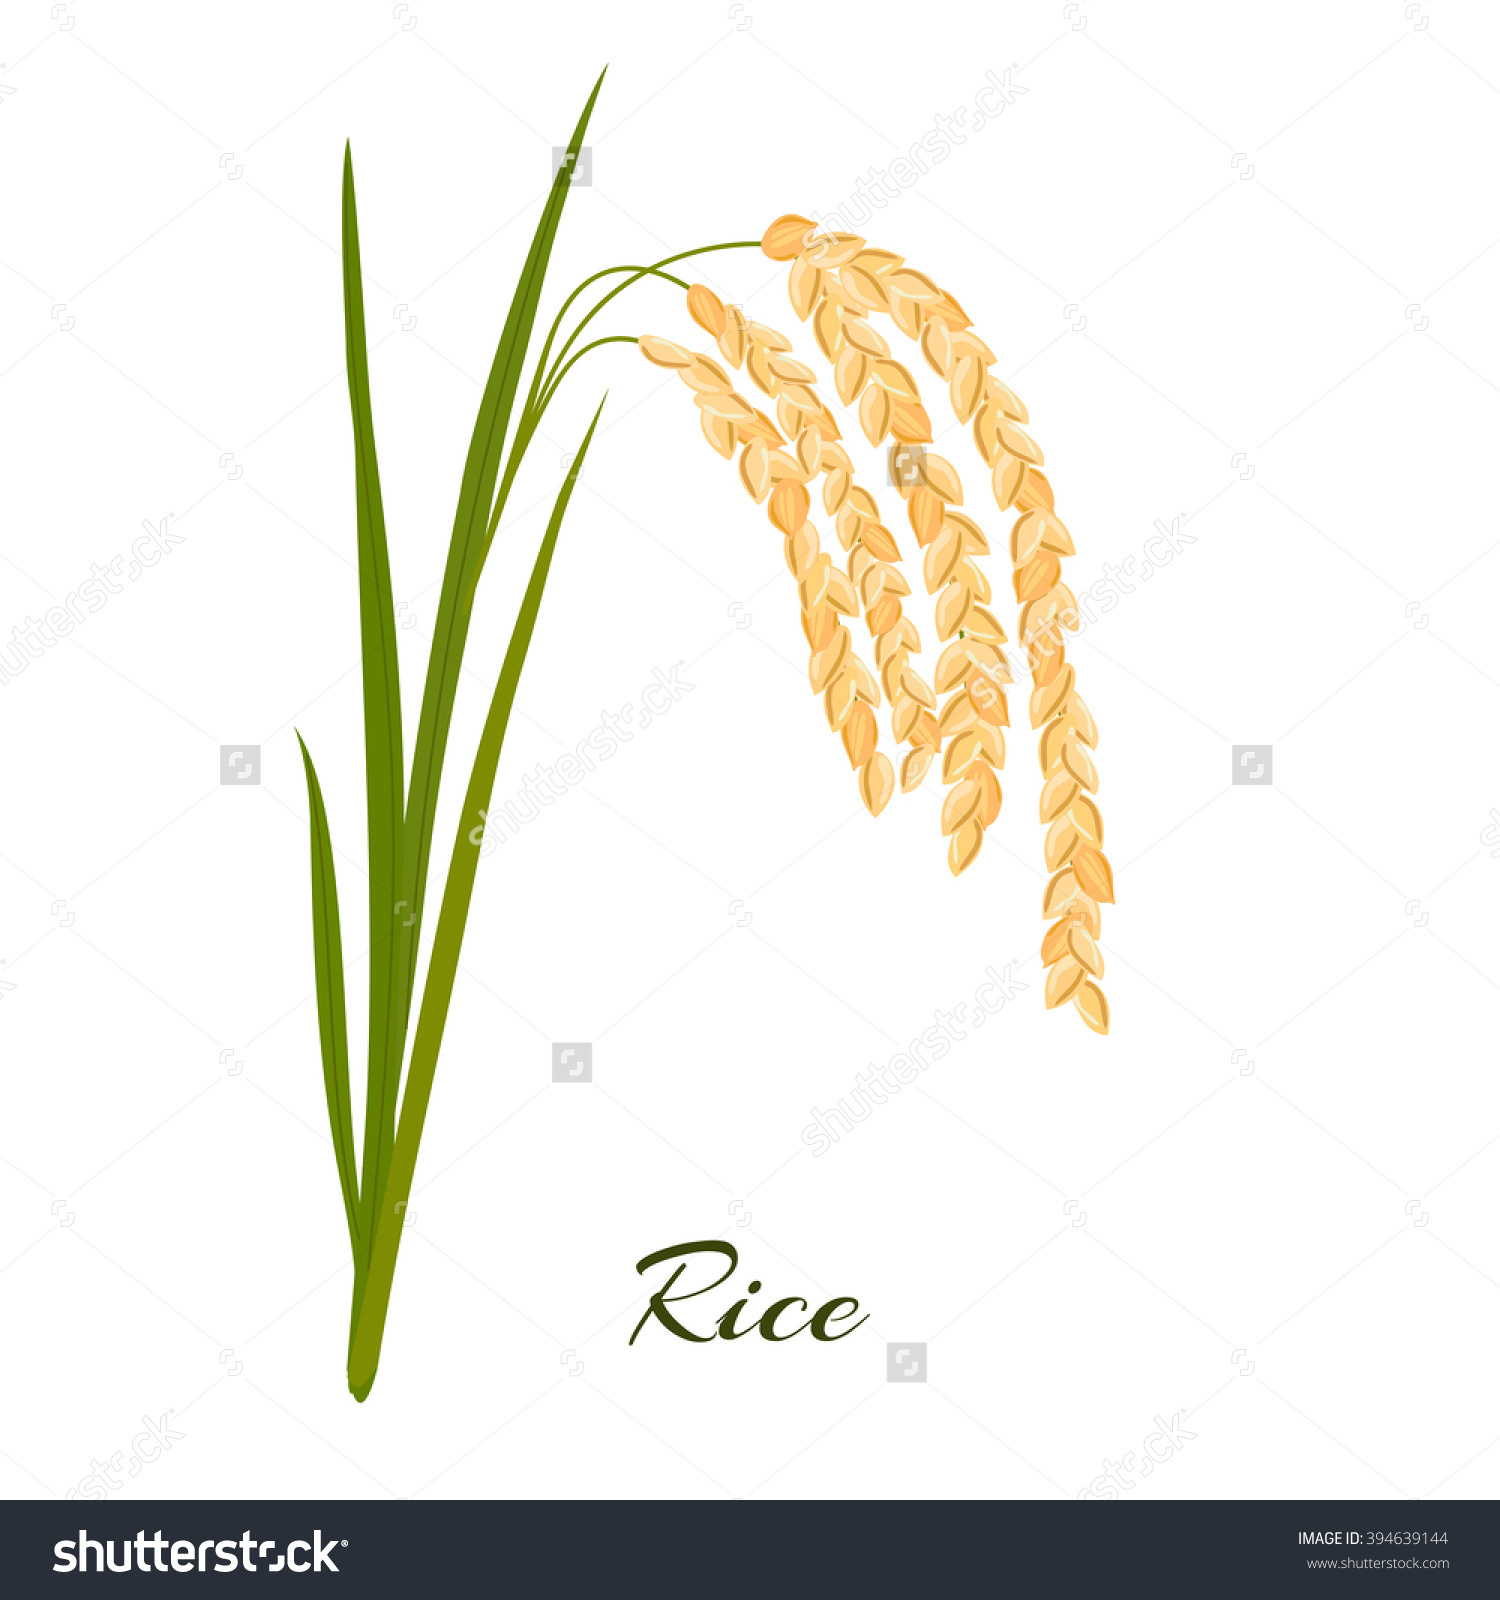 Rice Leaves Spikelets Rice On White Stock Vector 394639144.